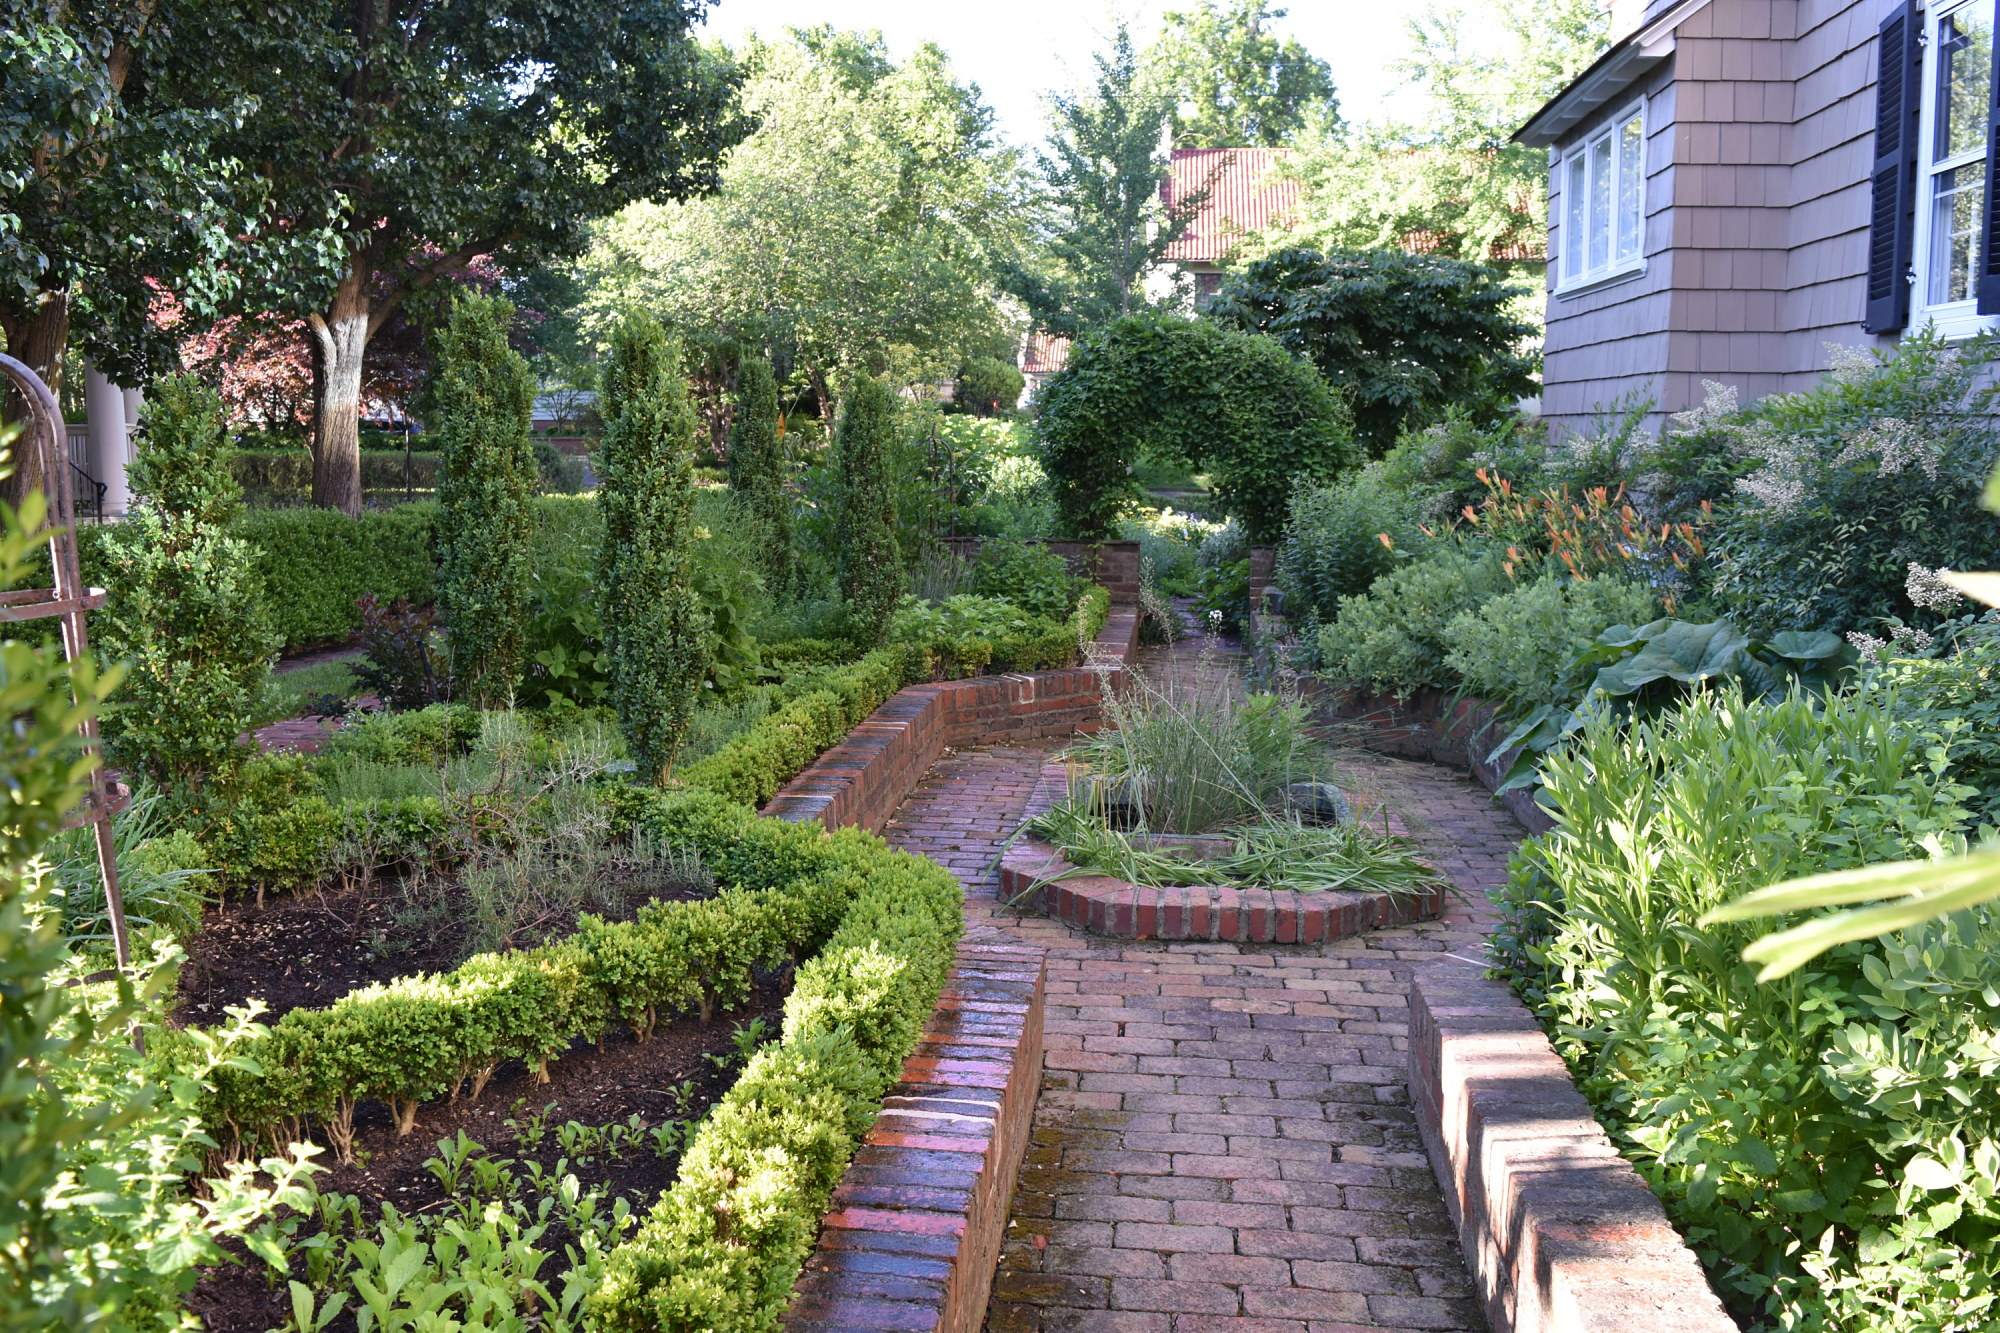 [Charles F.R. Ogilby House]: Miniature boxwood creates the parterre herb garden with upright holly.